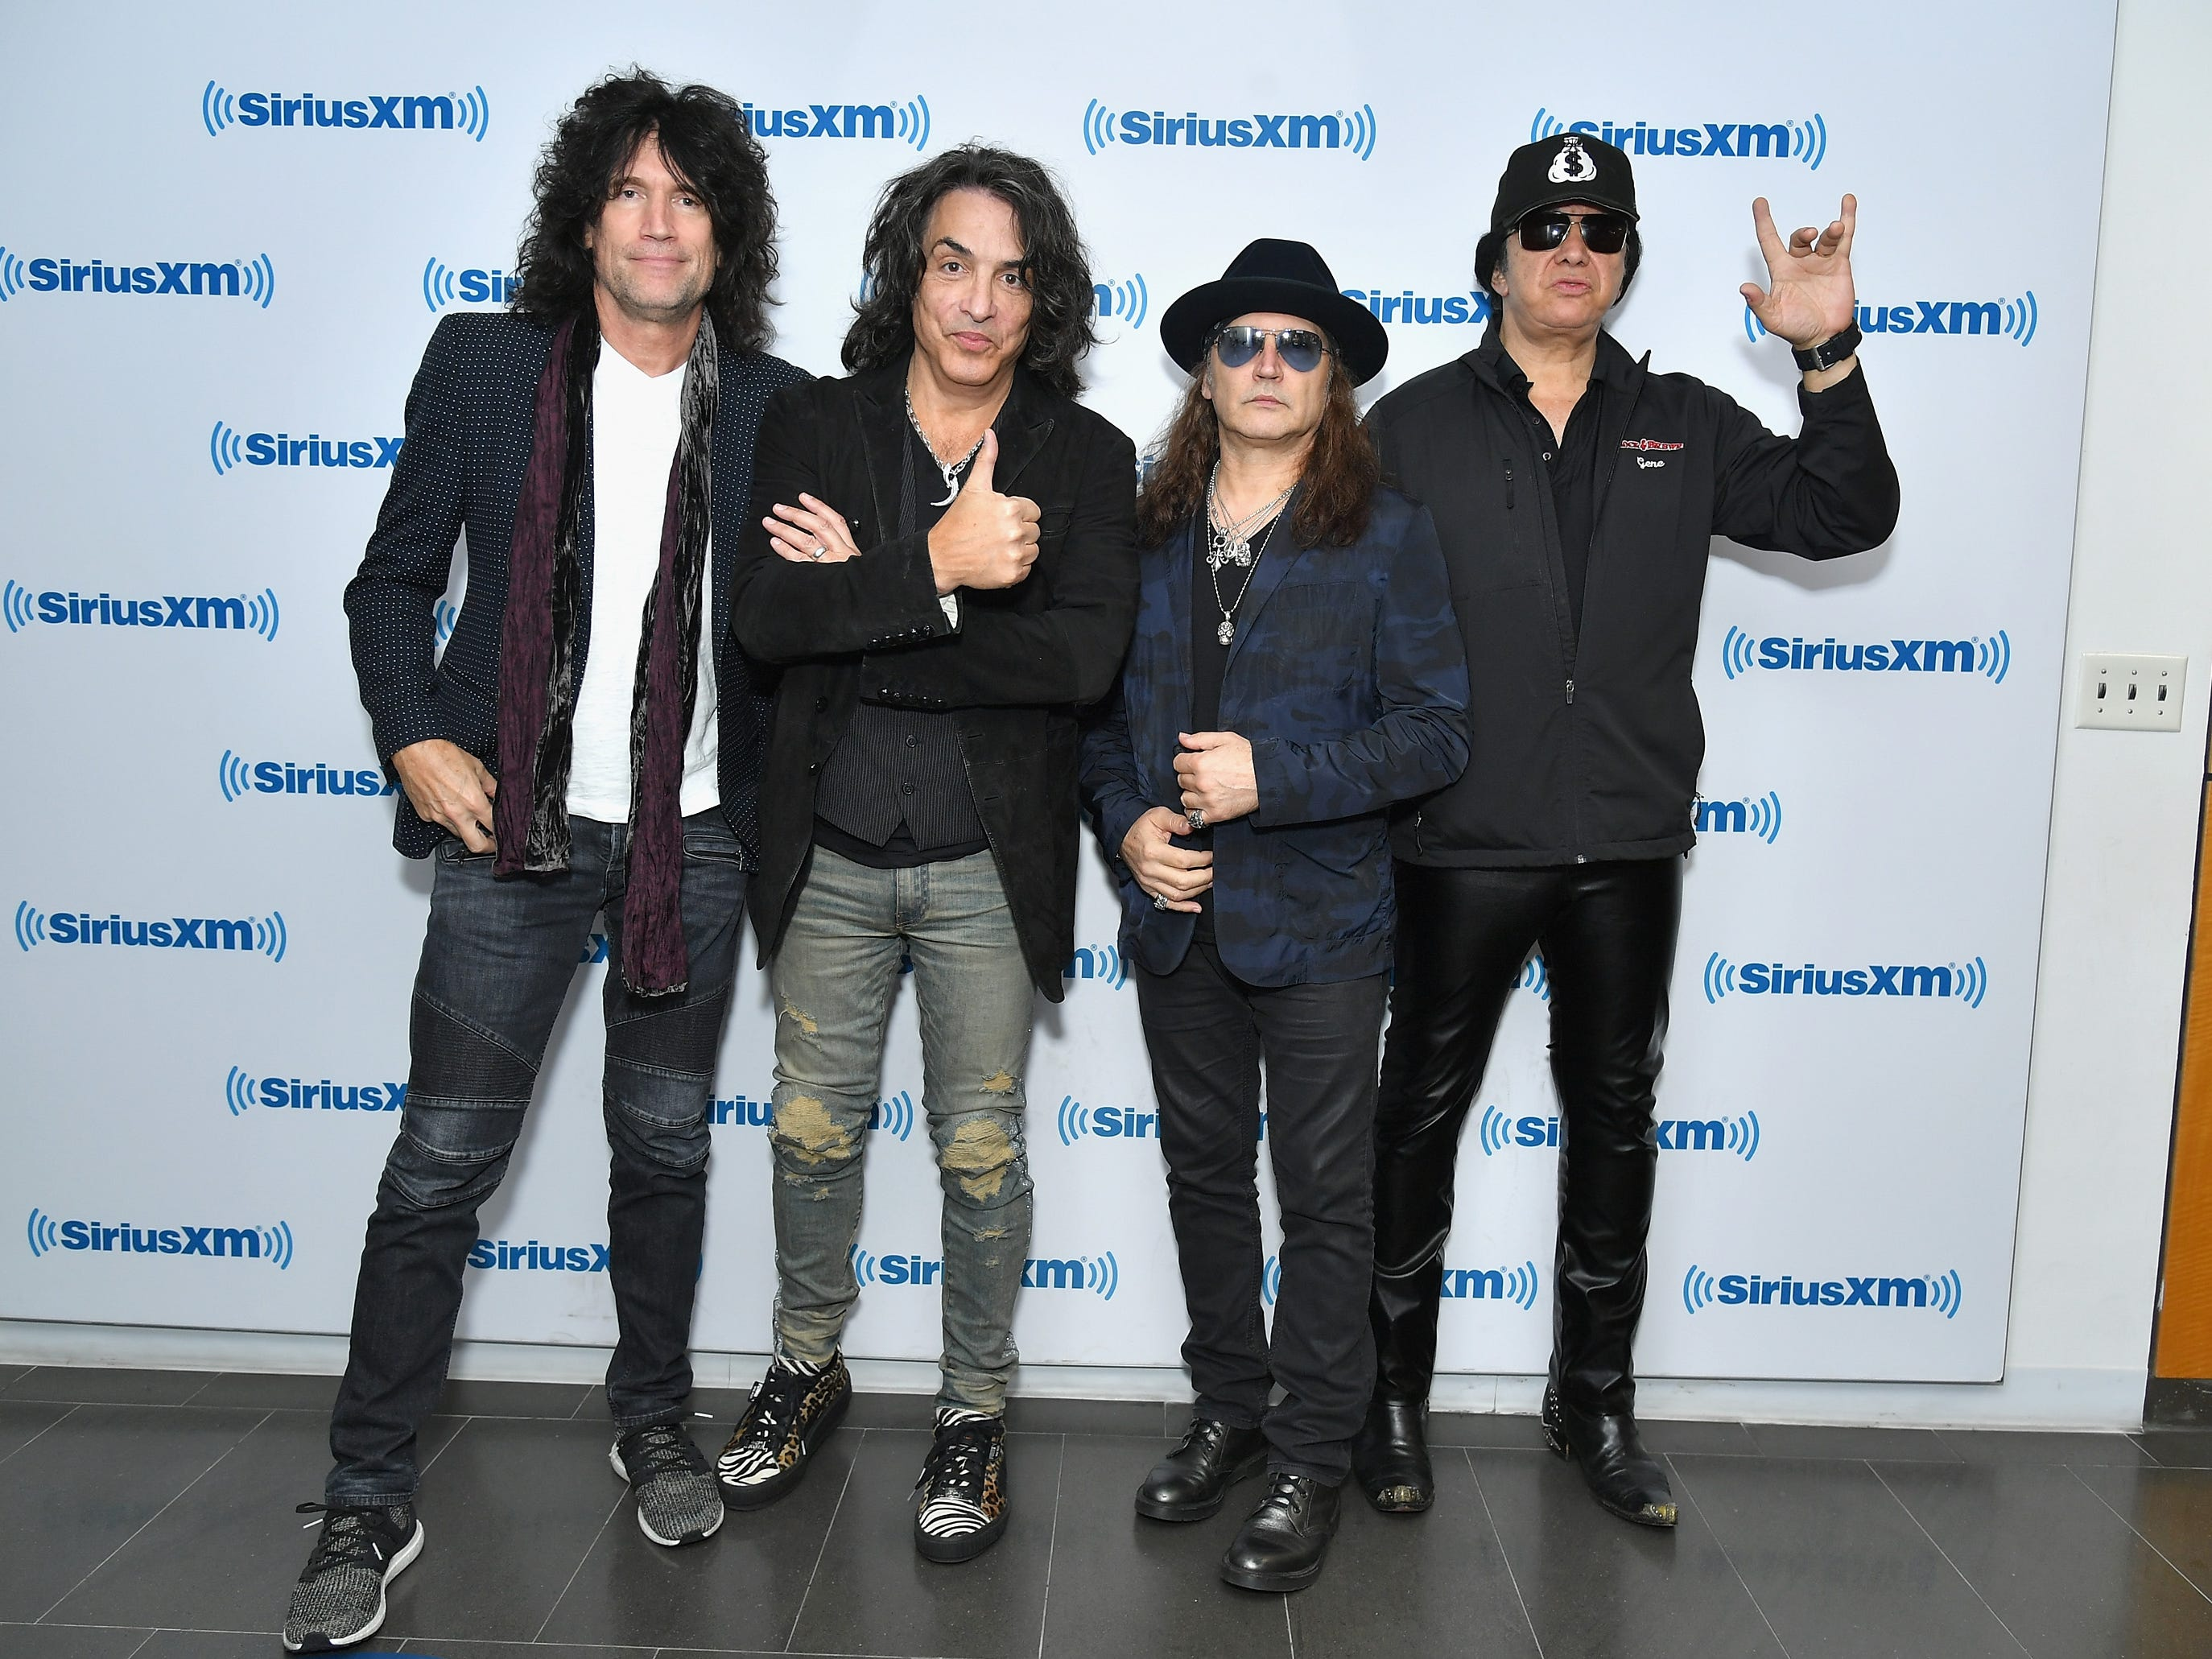 NEW YORK, NY - OCTOBER 29:  (L-R) Tommy Thayer, Paul Stanley, Eric Singer and Gene Simmons of the band KISS attend SiriusXM's Town Hall with KISS on October 29, 2018 in New York City.  (Photo by Michael Loccisano/Getty Images for SiriusXM)